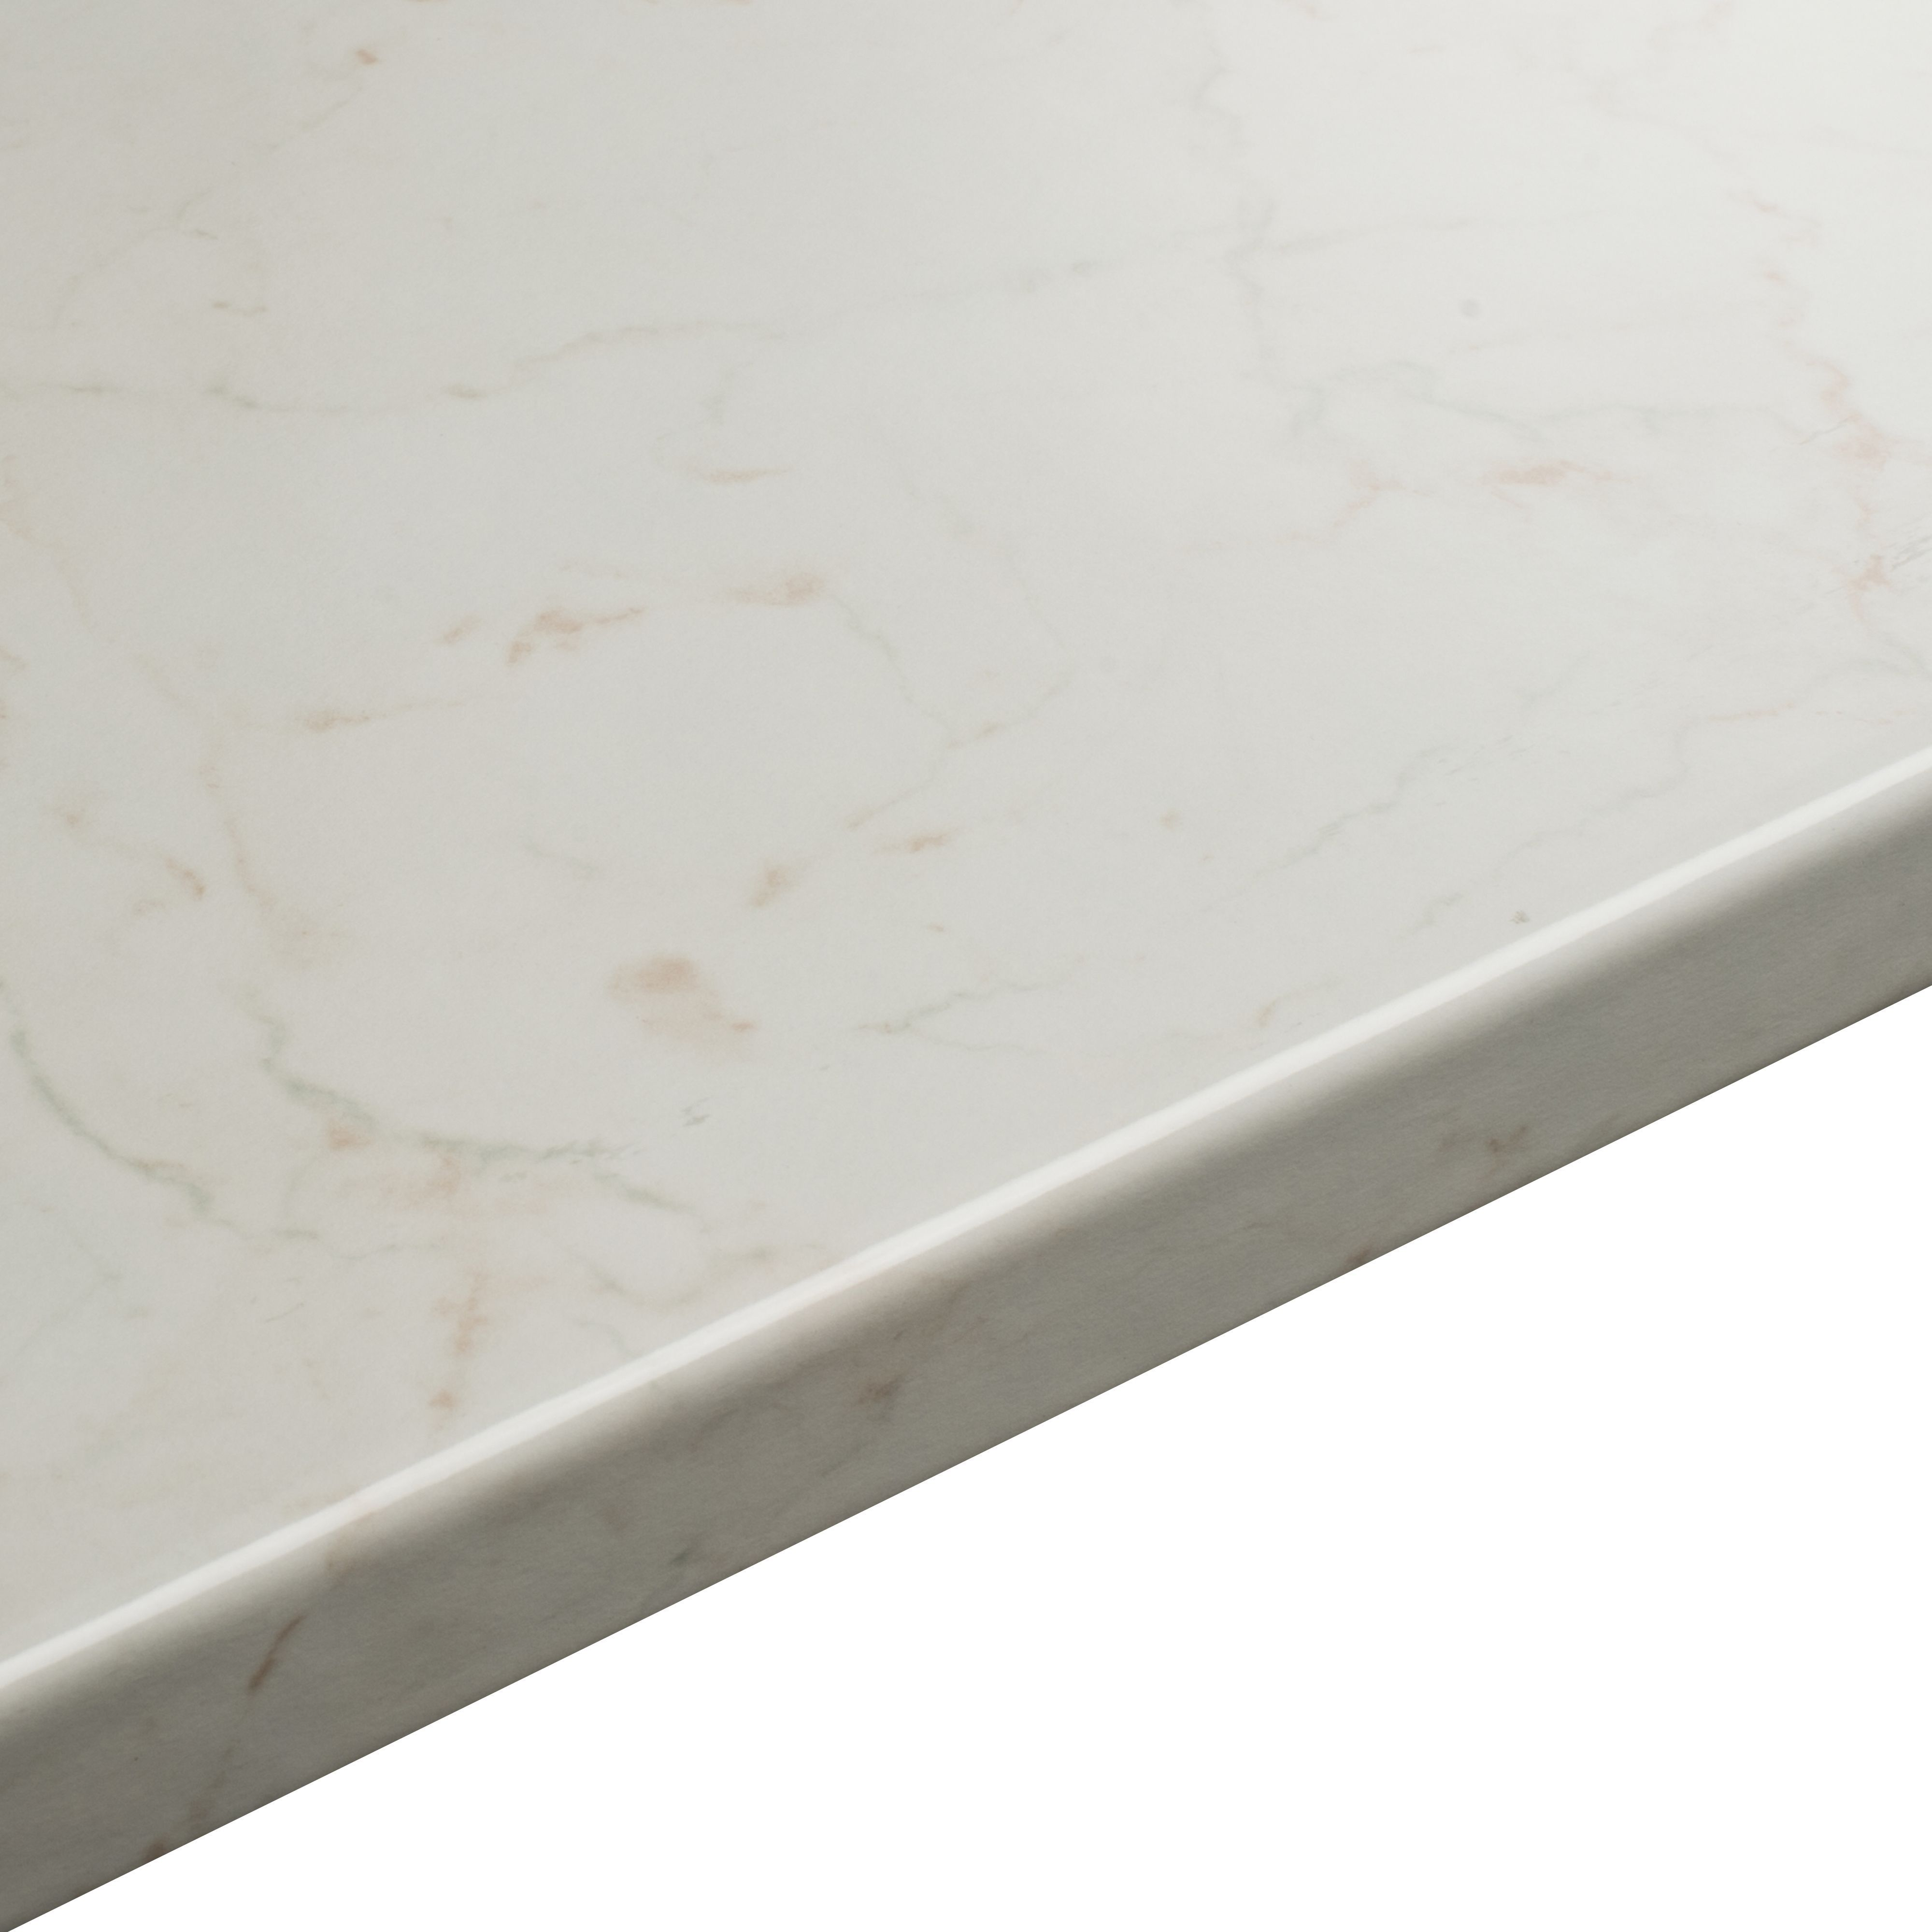 38mm B&Q Laminate White Gloss Marble effect Breakfast bar (L)2000mm ...